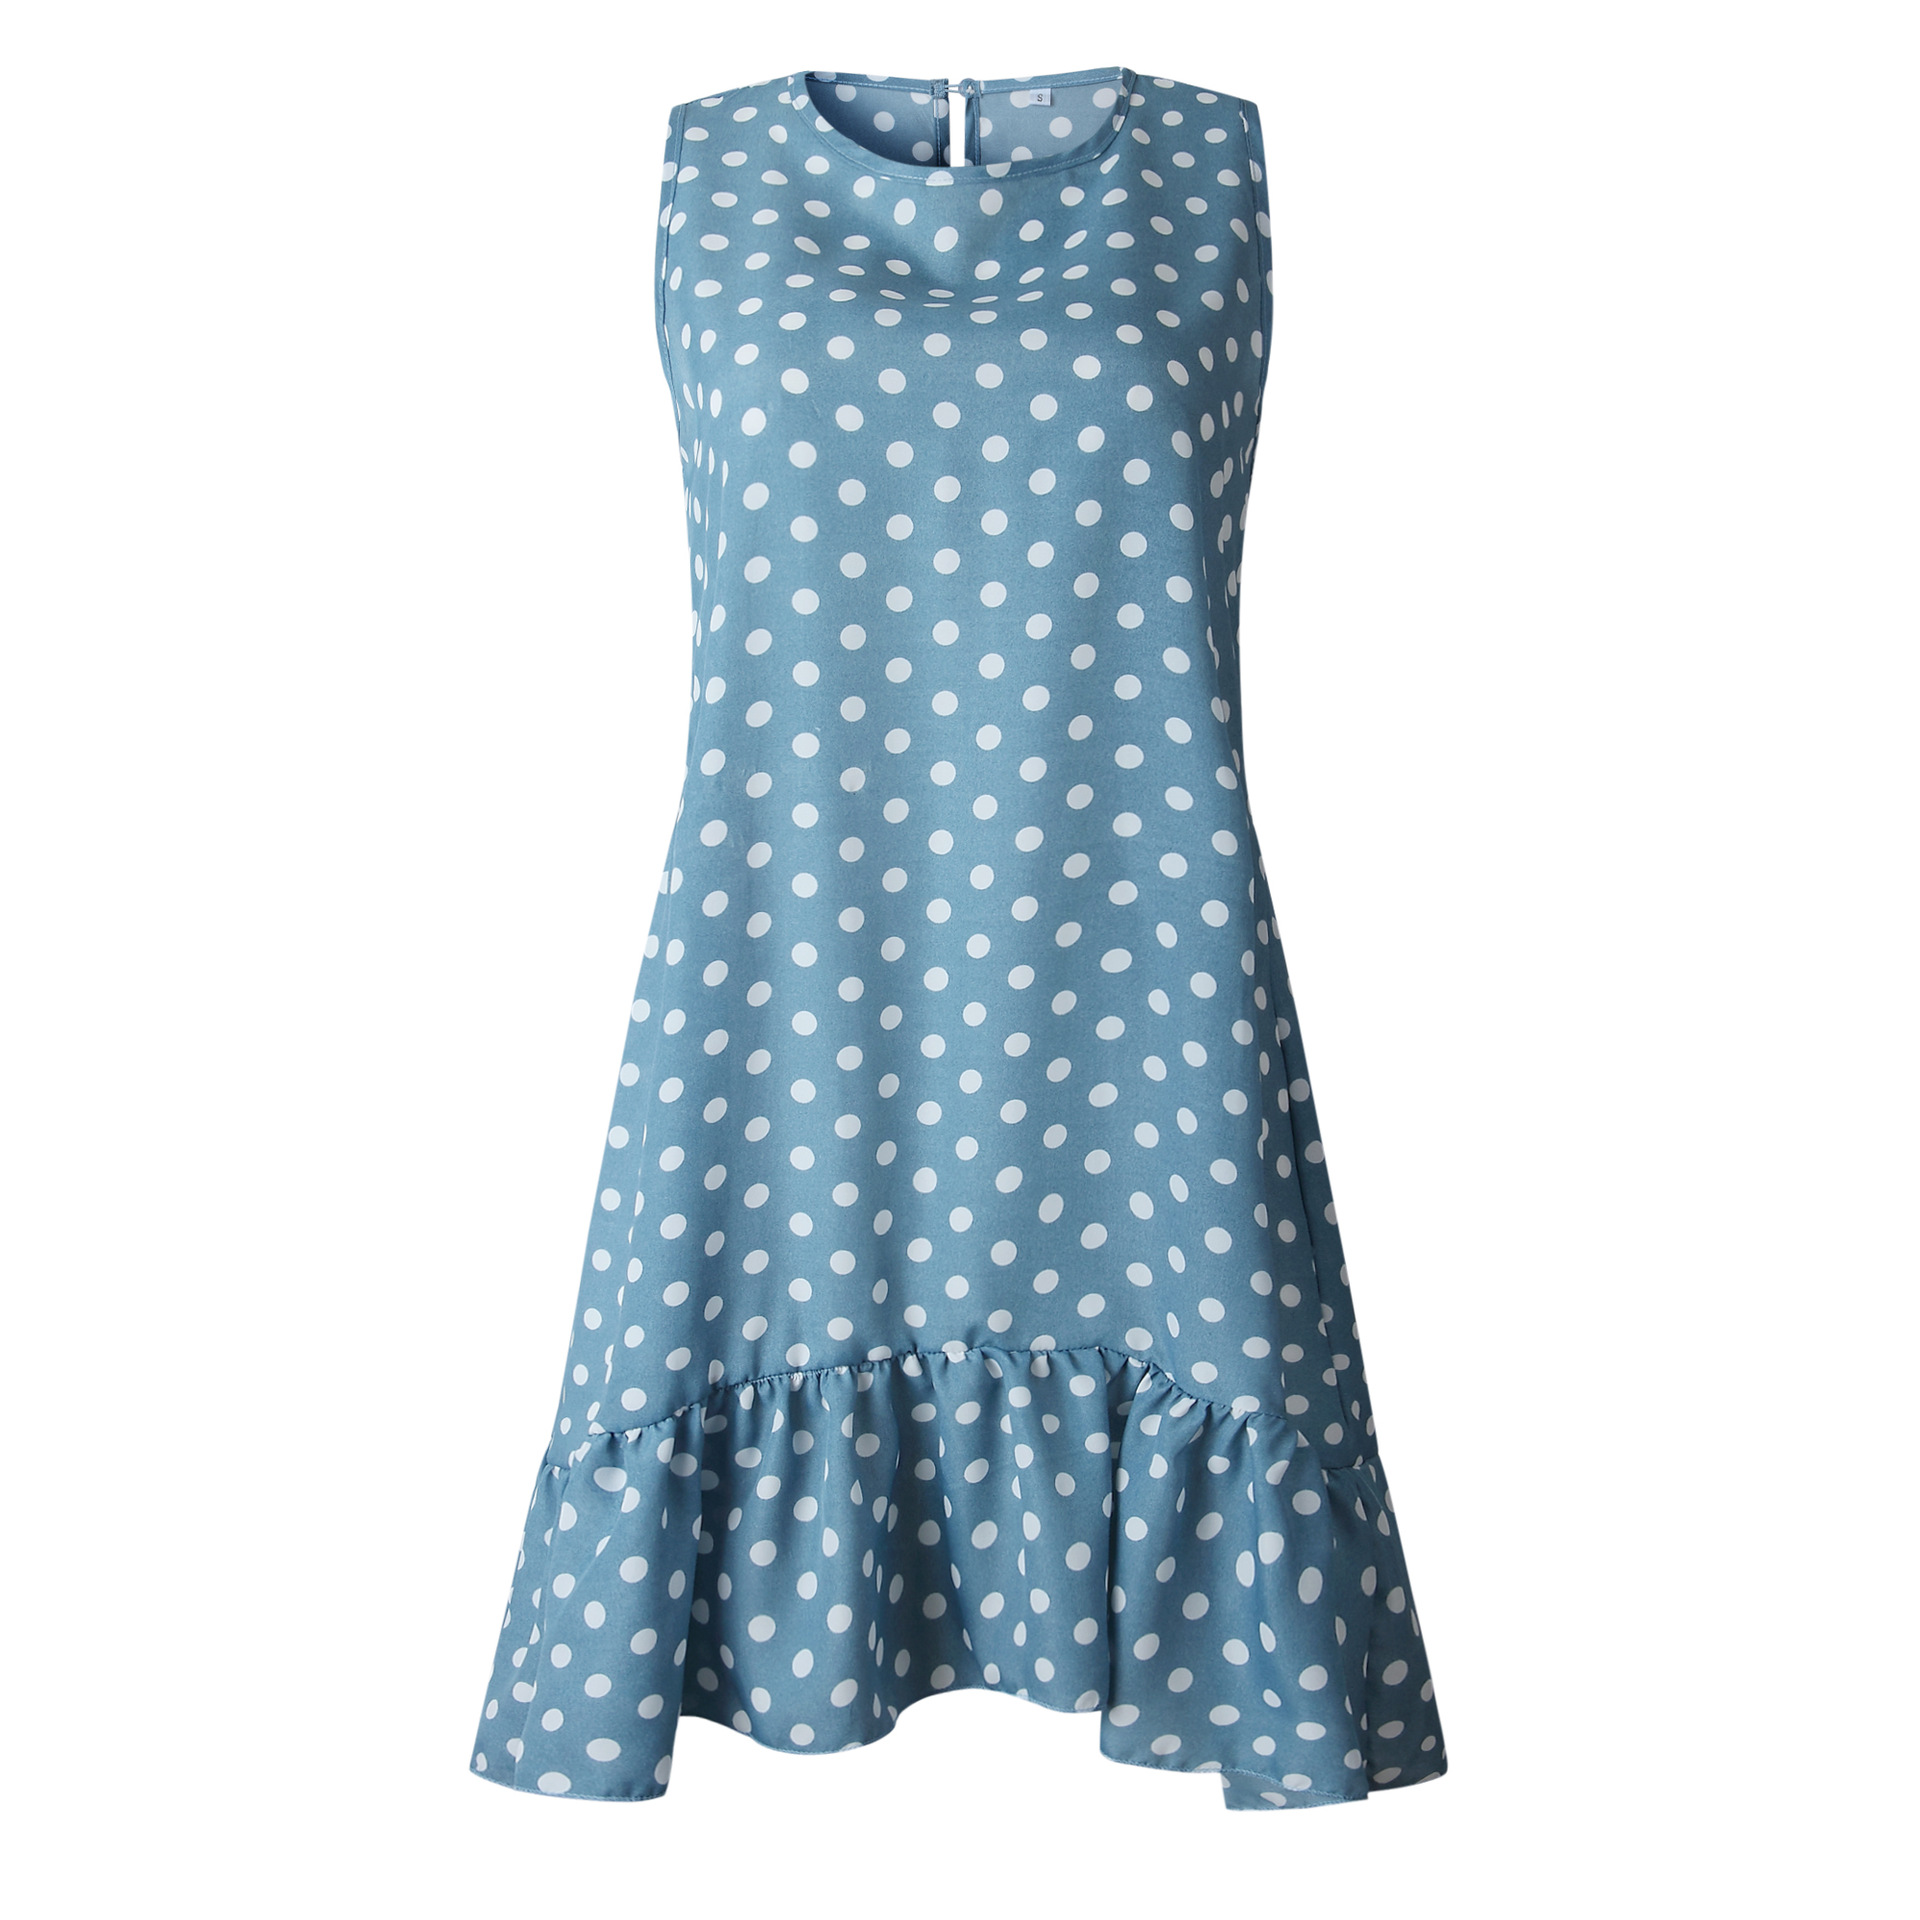 Wontive Dropshipping Spring and Summer Fashion Fresh and Lovely Print Wave Point Ruffle Ladies Dress in Dresses from Women 39 s Clothing